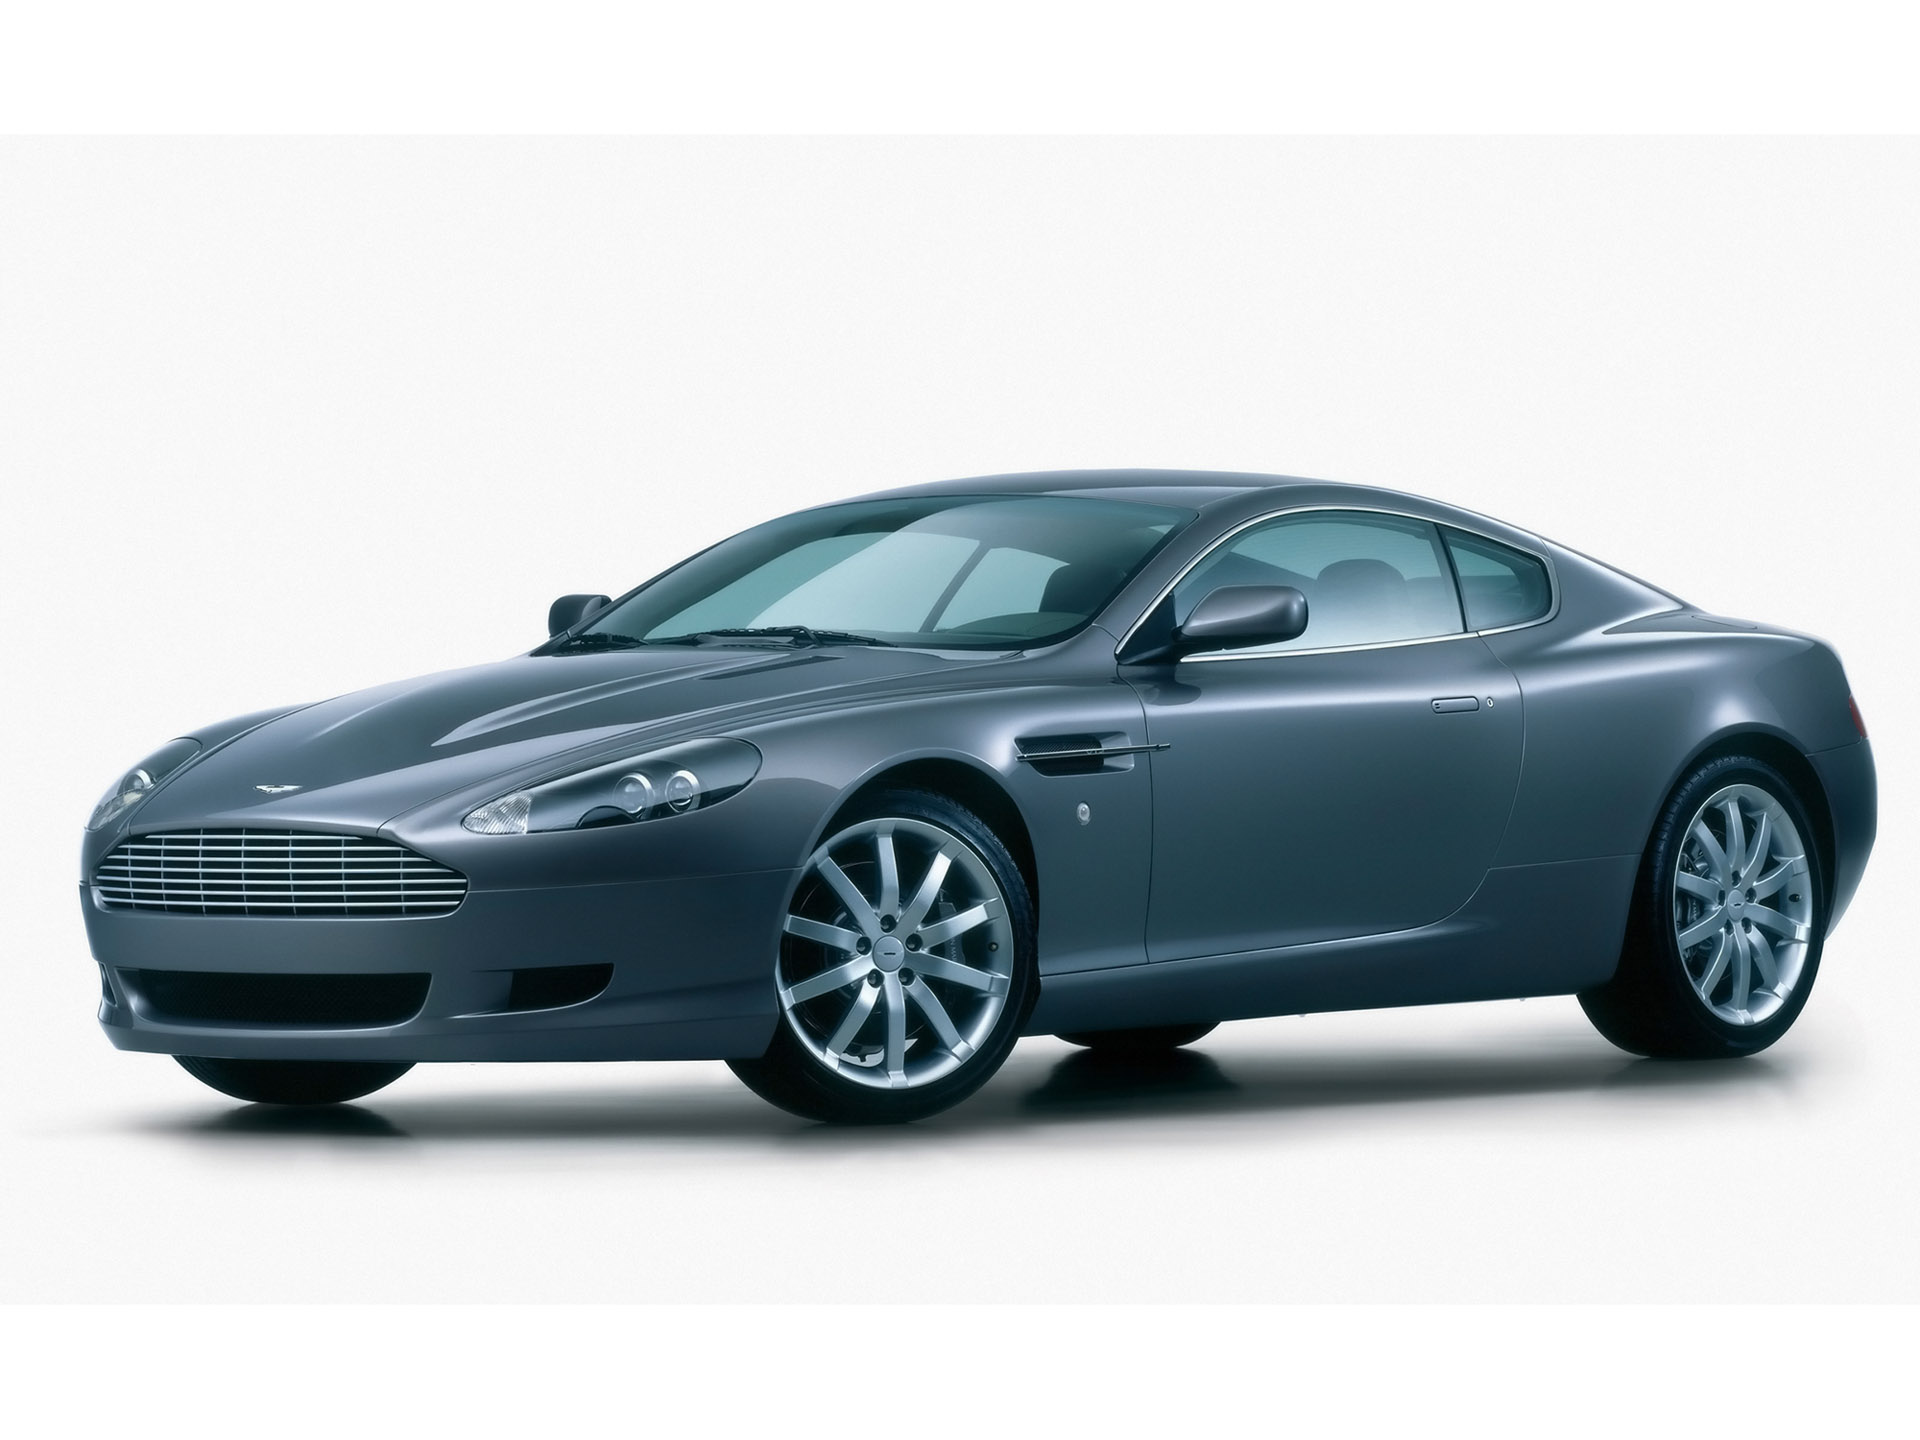 Aston Martin Stock >> Aston Martin Db9 Wallpapers Aston Martin Db9 Stock Photos